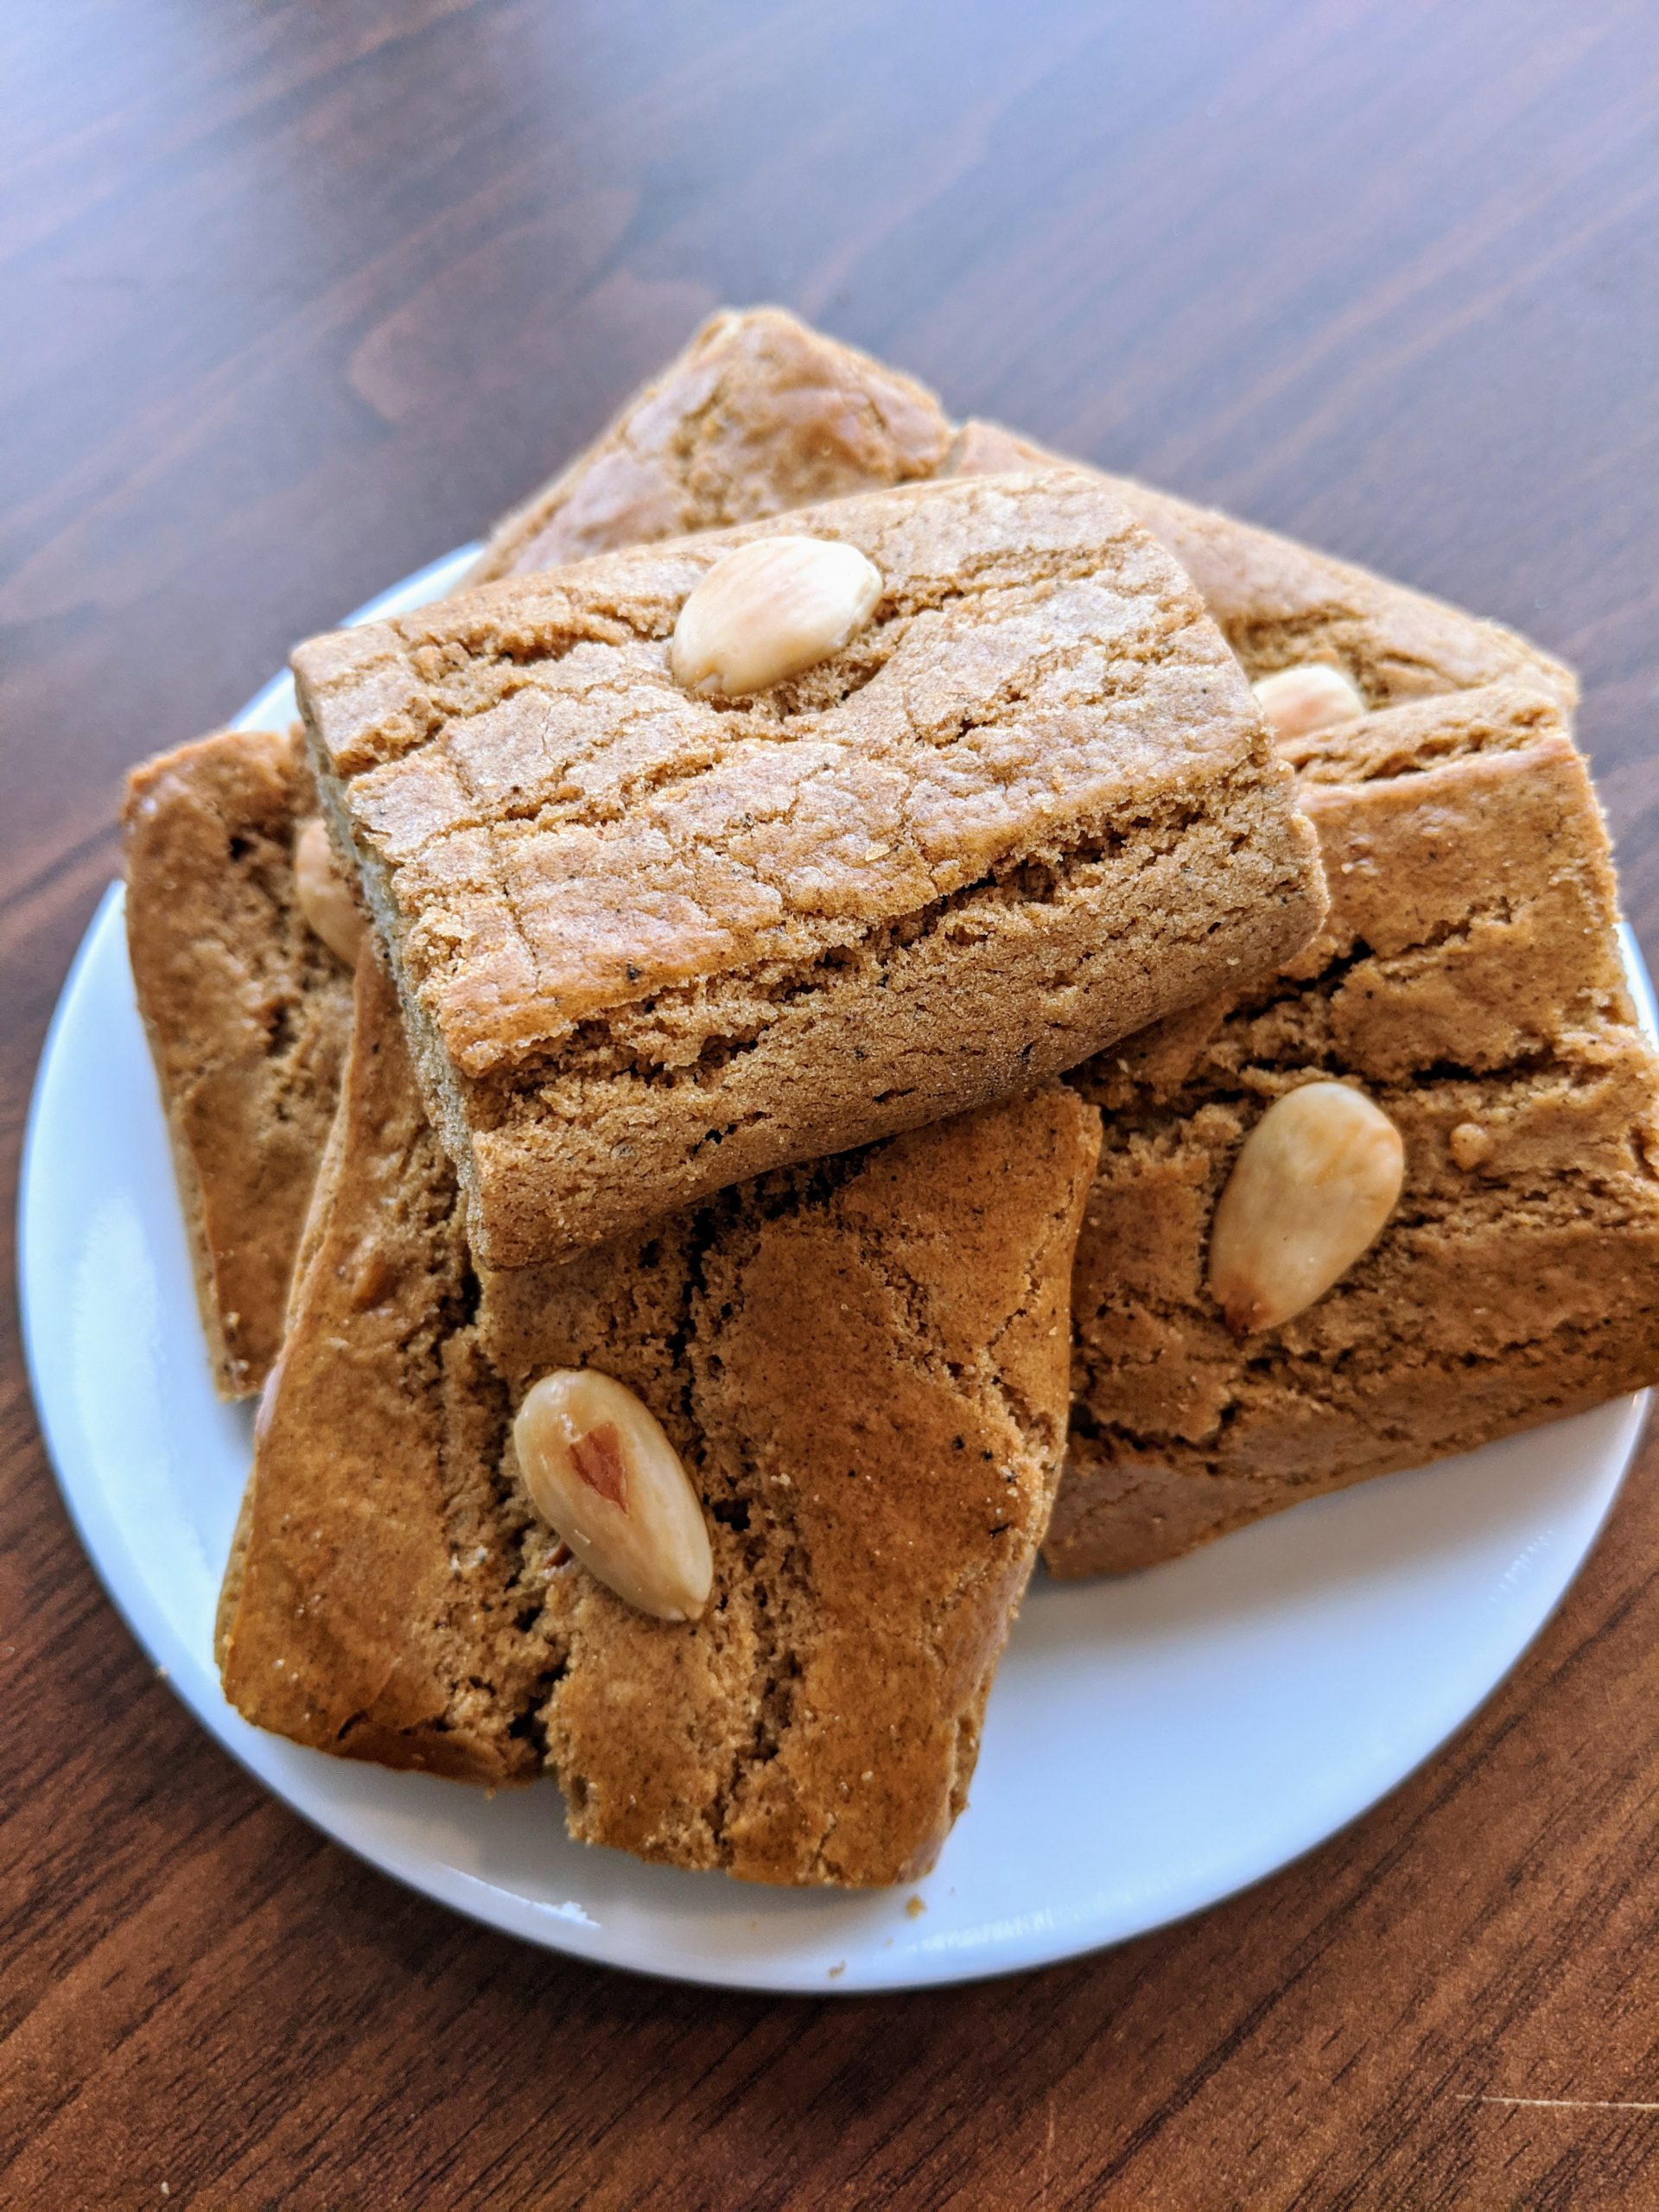 Filled speculaas